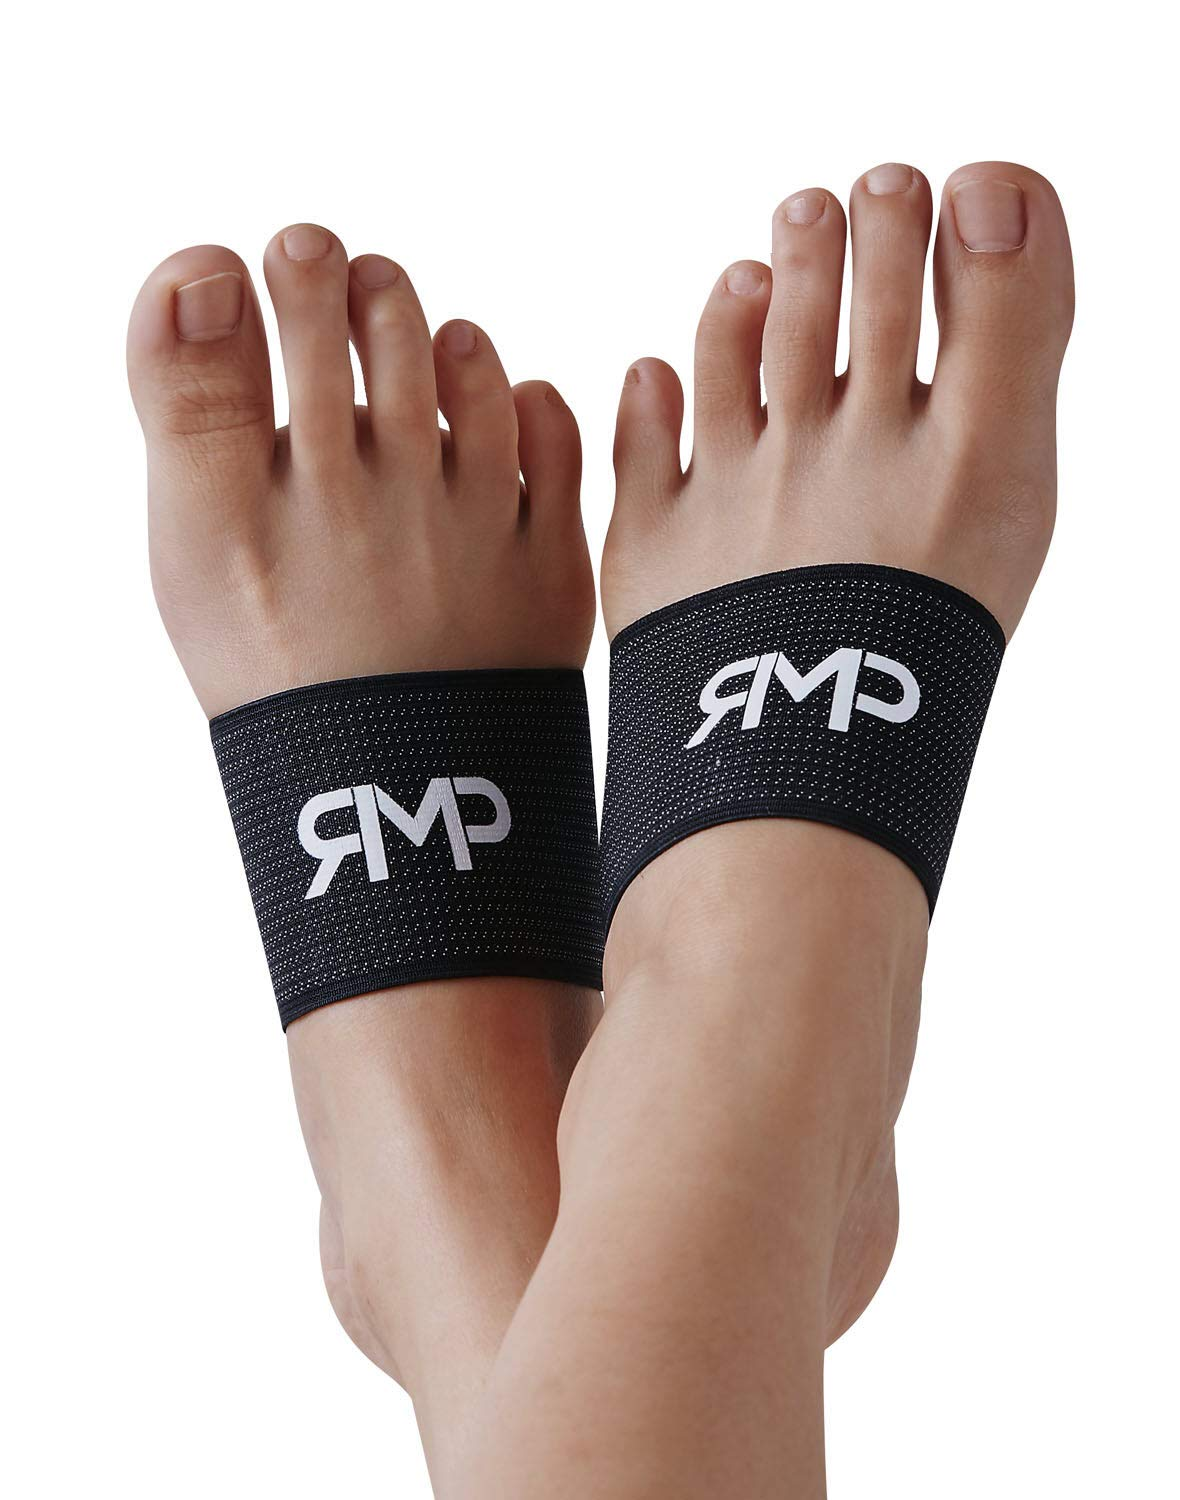 Arch Compression Sleeves for Plantar Fasciitis - Excellent for High Arches, Flat Feet, Heel or Foot Pain (1 Pair)